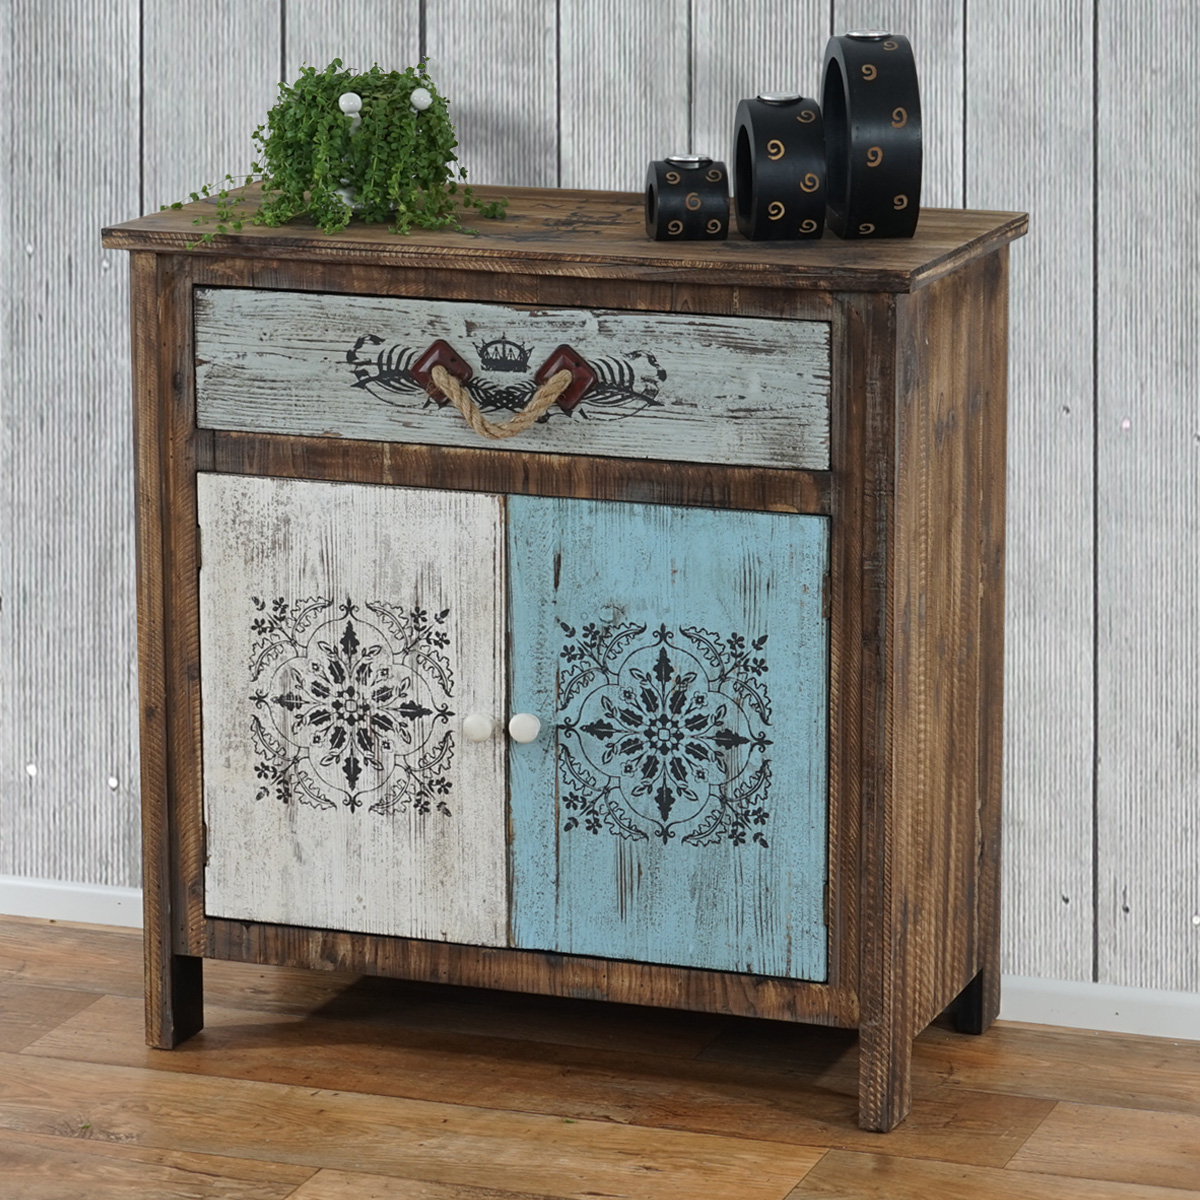 kommode aveiro sideboard schubladenschrank schrank shabby. Black Bedroom Furniture Sets. Home Design Ideas